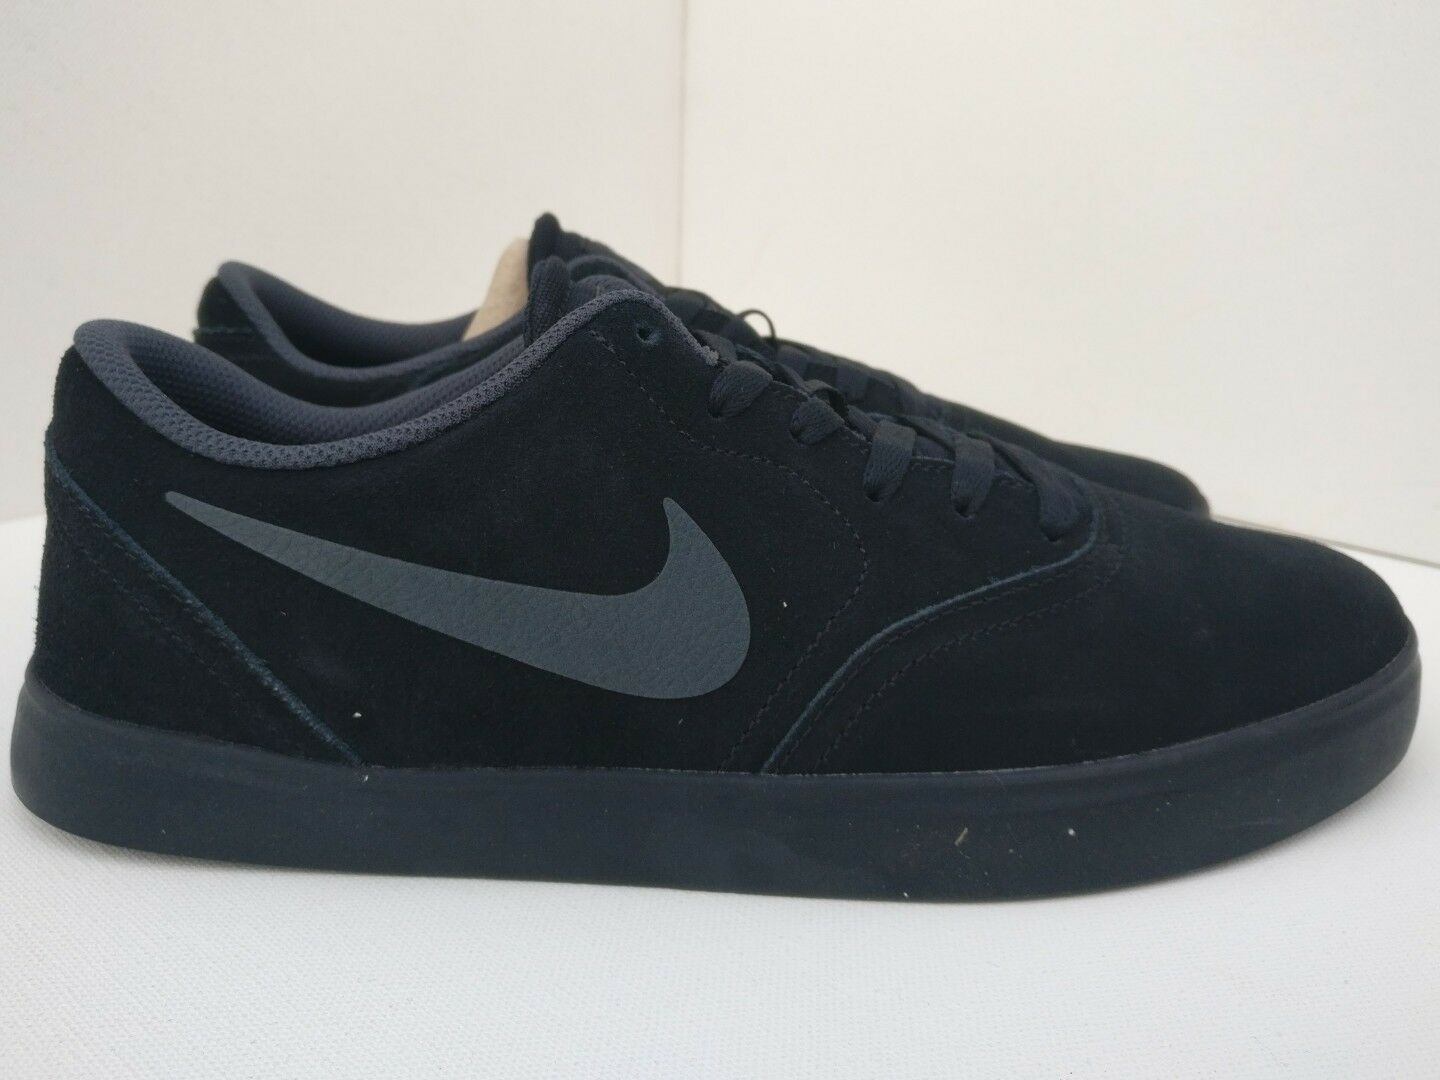 Nike SB Check Black Anthracite 705265005 New shoes for men and women, limited time discount